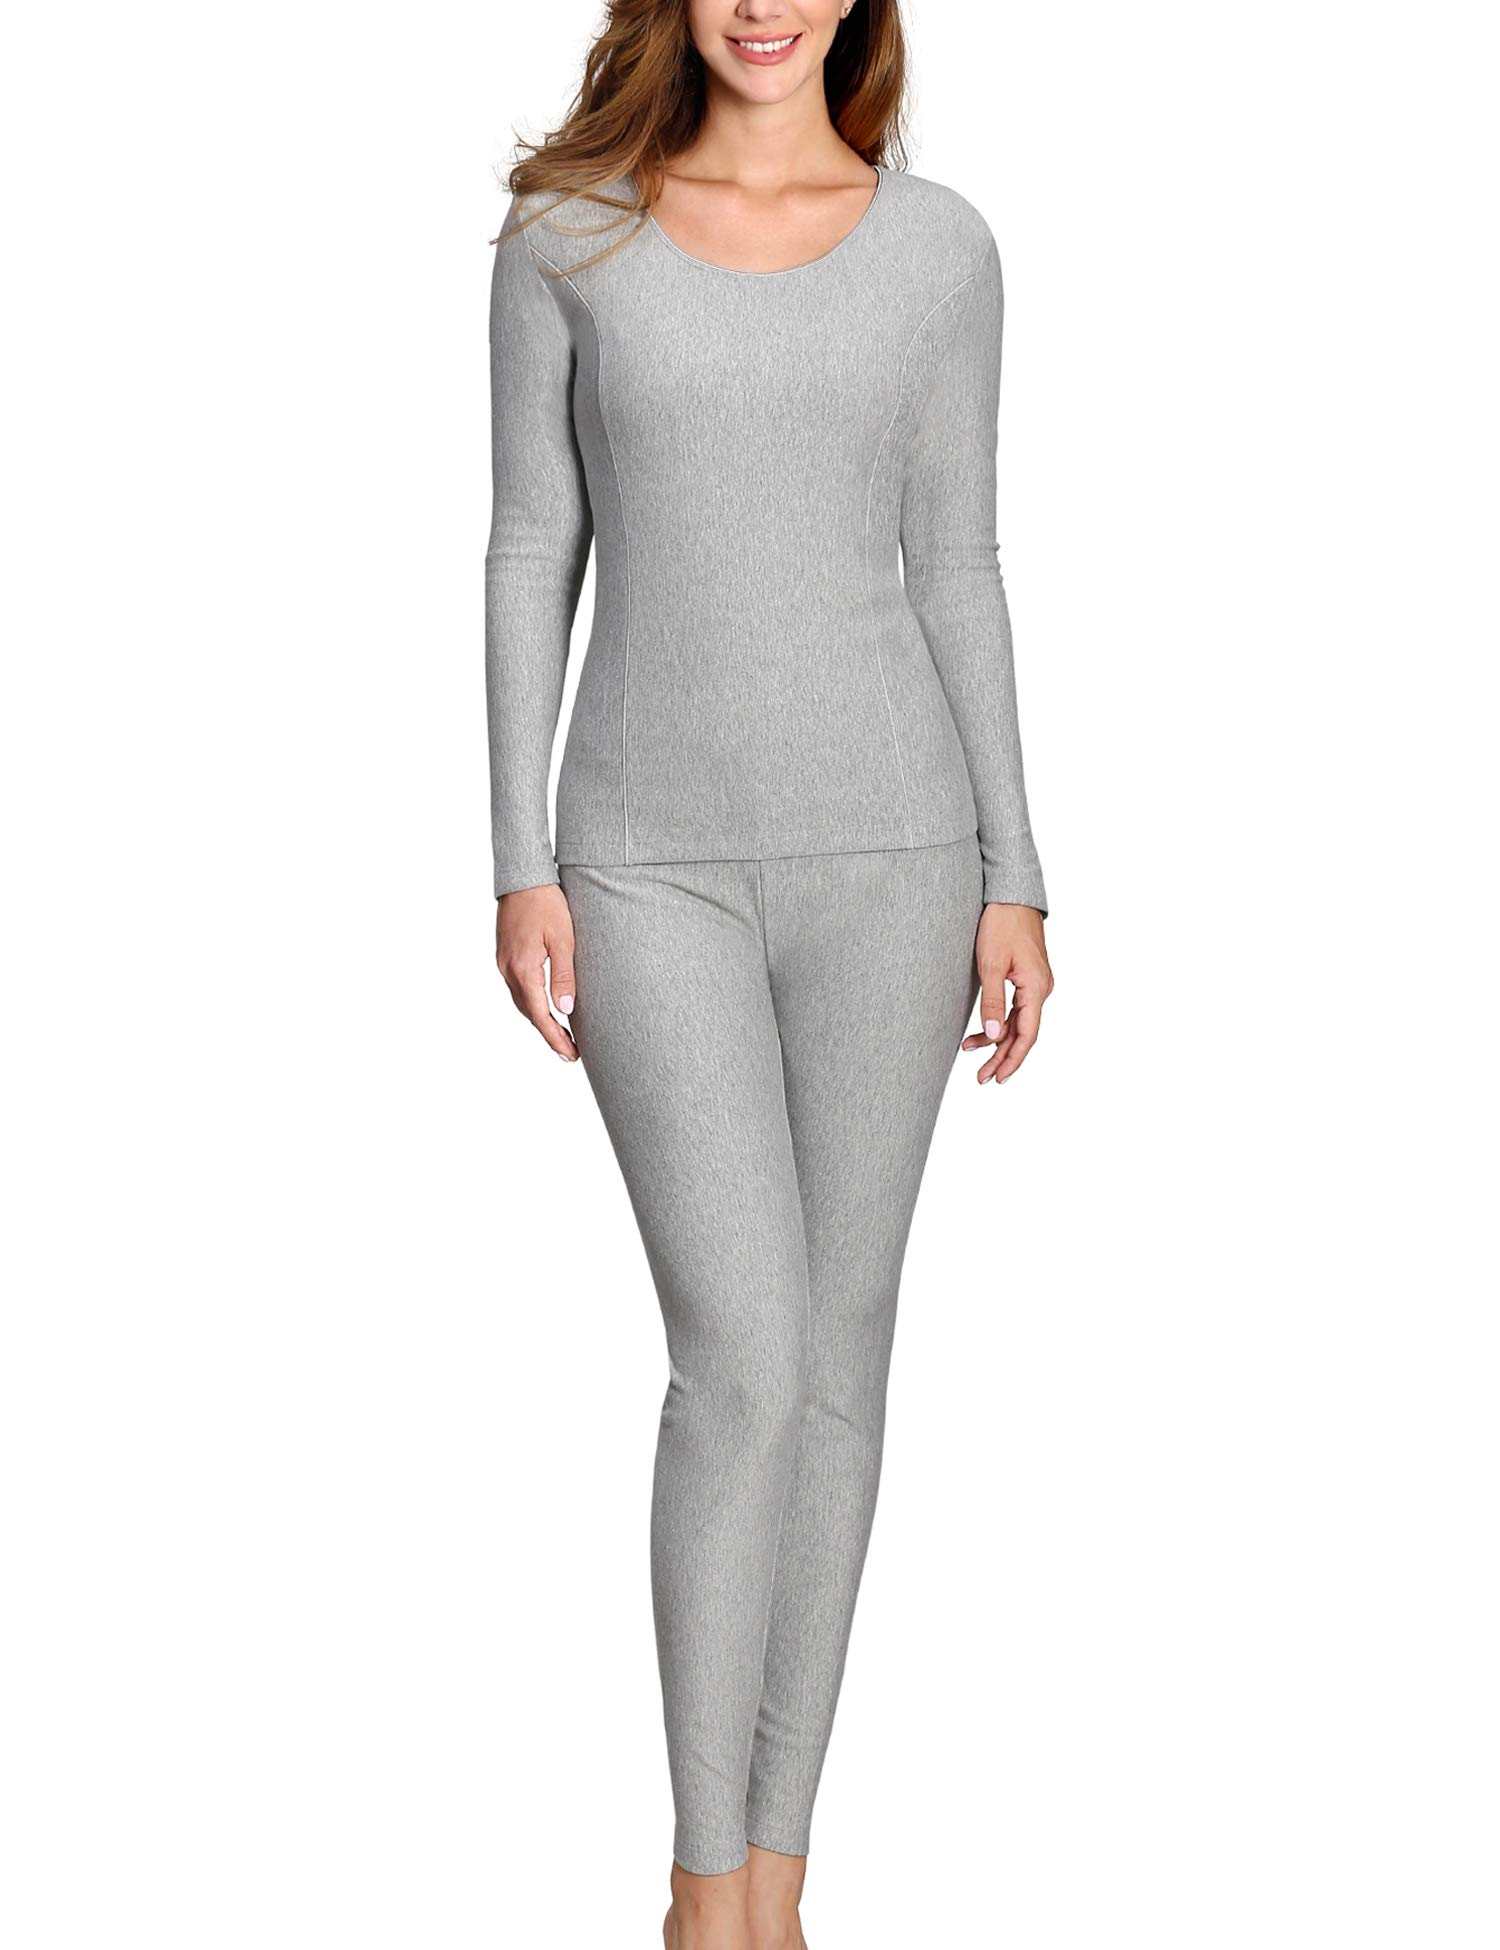 COLORFULLEAF Womens Cotton Thermal Underwear Set Heavyweight Long Johns Fleece Lined